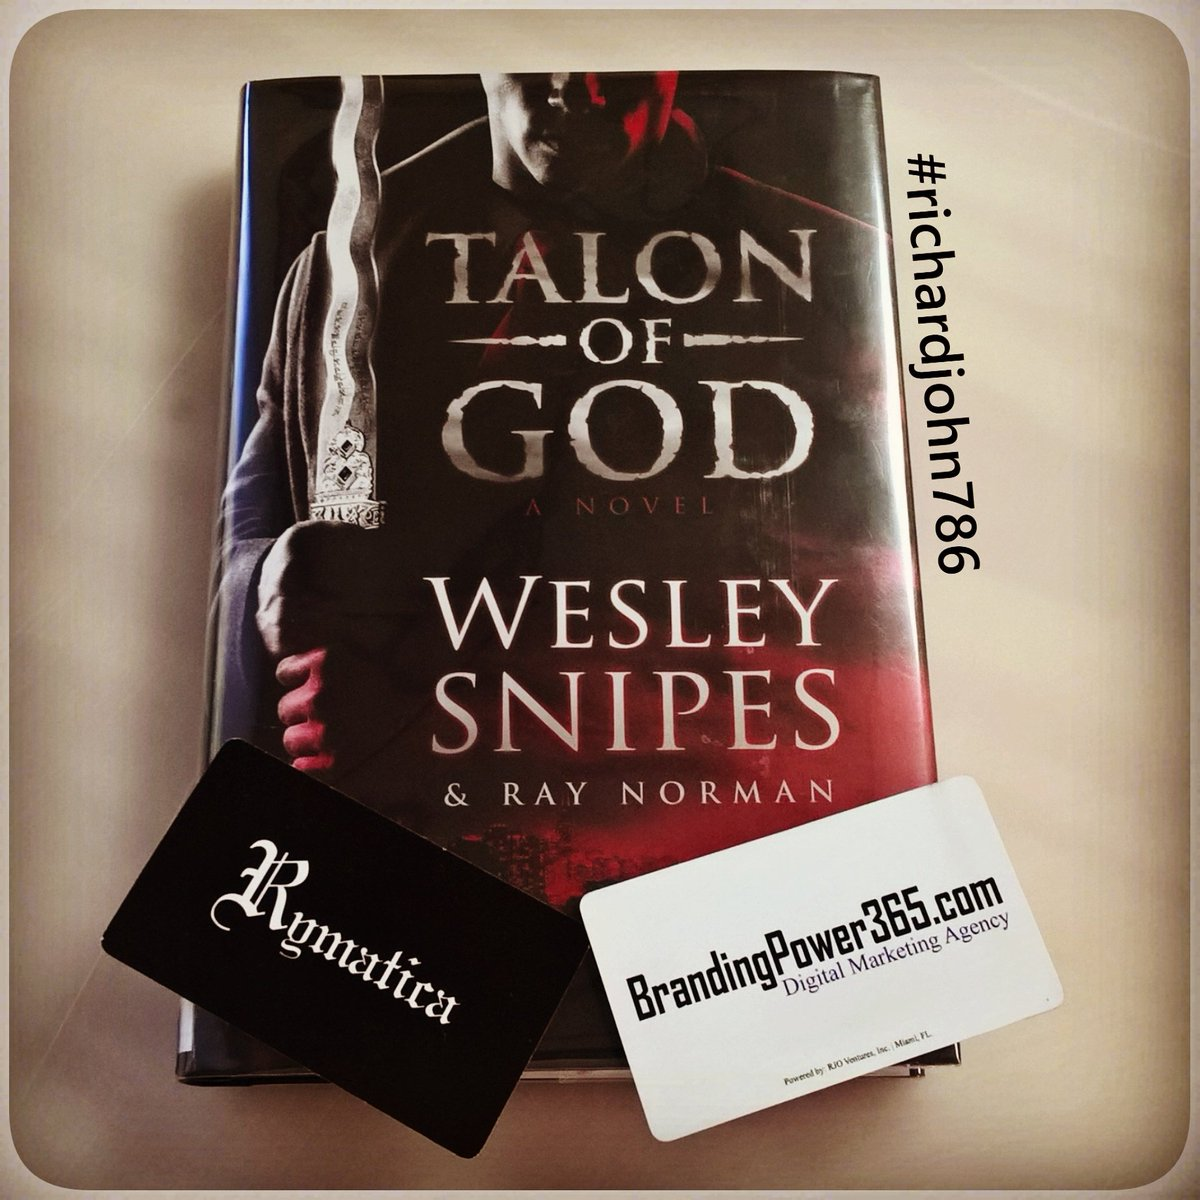 #Reading the #TalonofGod #Novel by #WesleySnipes &amp; #RayNorman. #Author #Writer #Book #Fiction #Debut #Urban #Fantasy #richardjohn786 #Miami<br>http://pic.twitter.com/ecAKgdLb3g